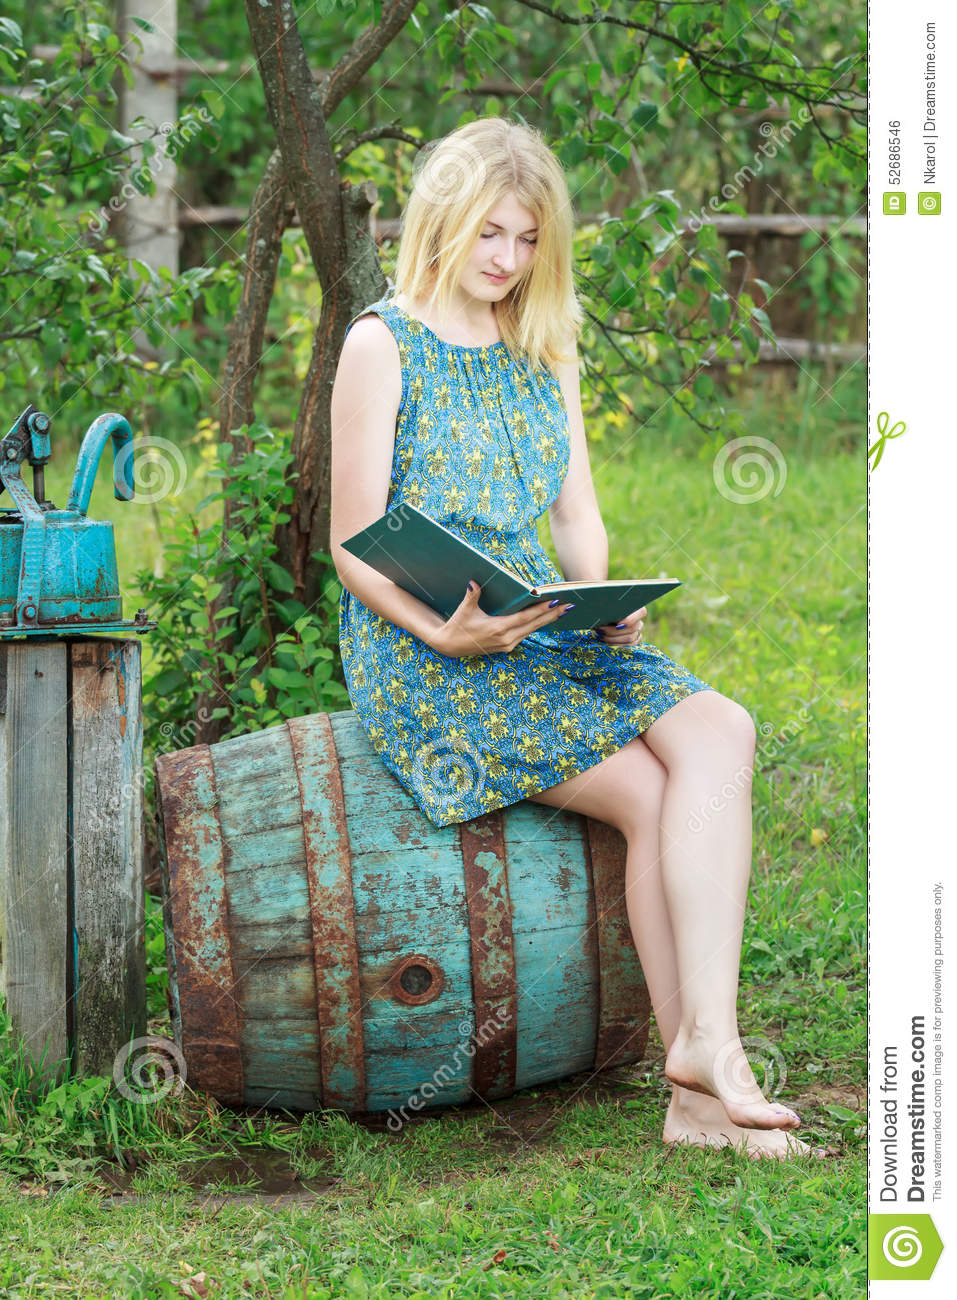 https://thumbs.dreamstime.com/z/barefoot-student-girl-garden-reading-book-blue-cover-summer-opened-52686546.jpg